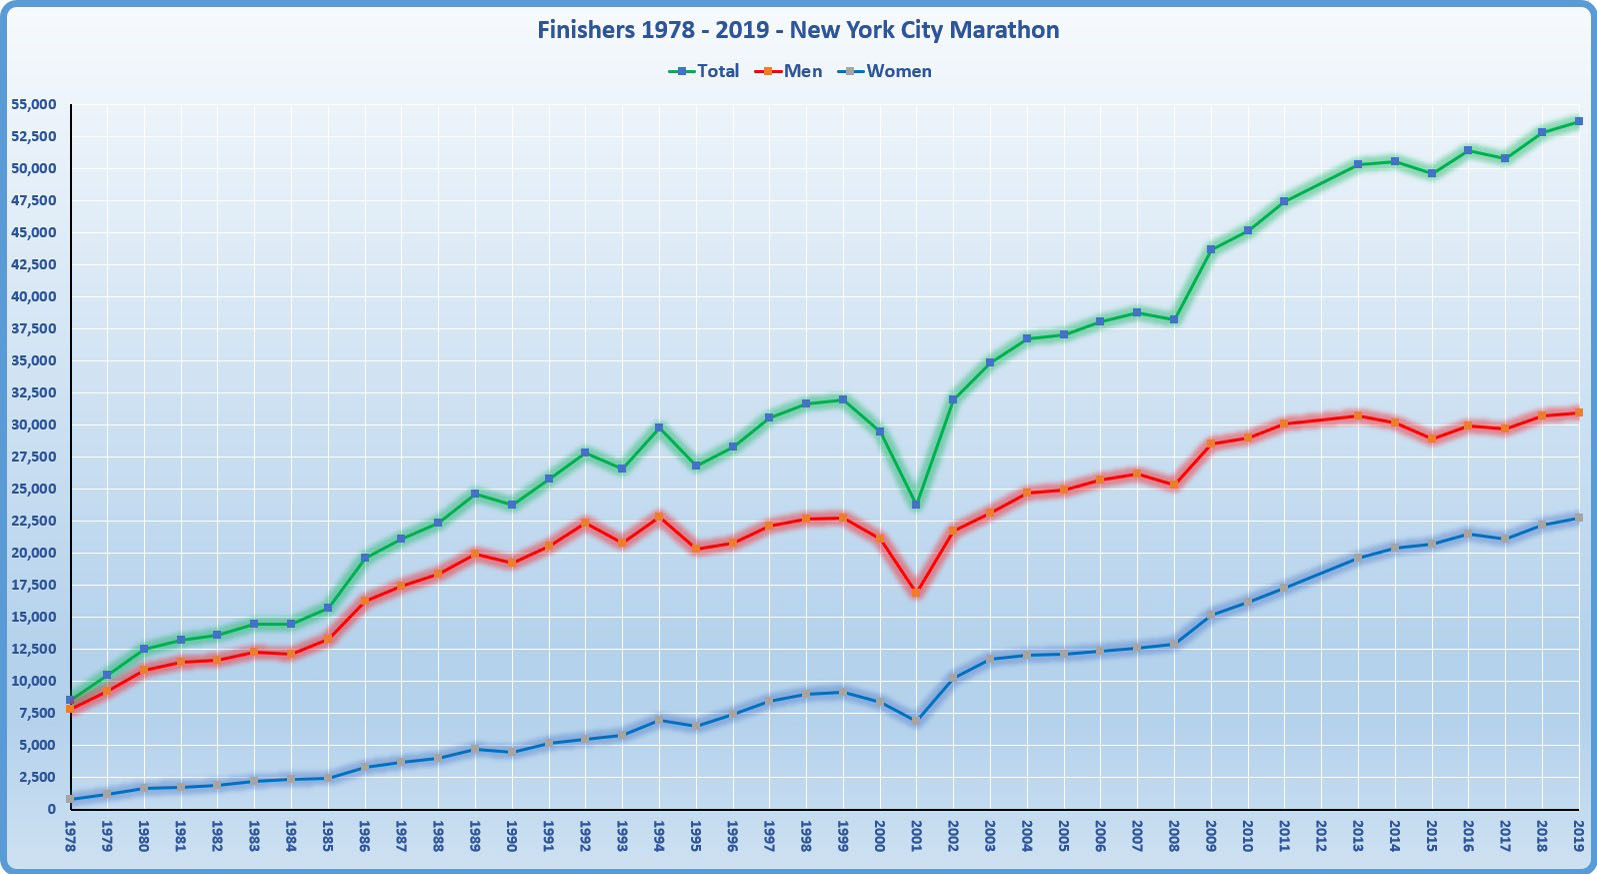 Number of finishers 1978 - 2016